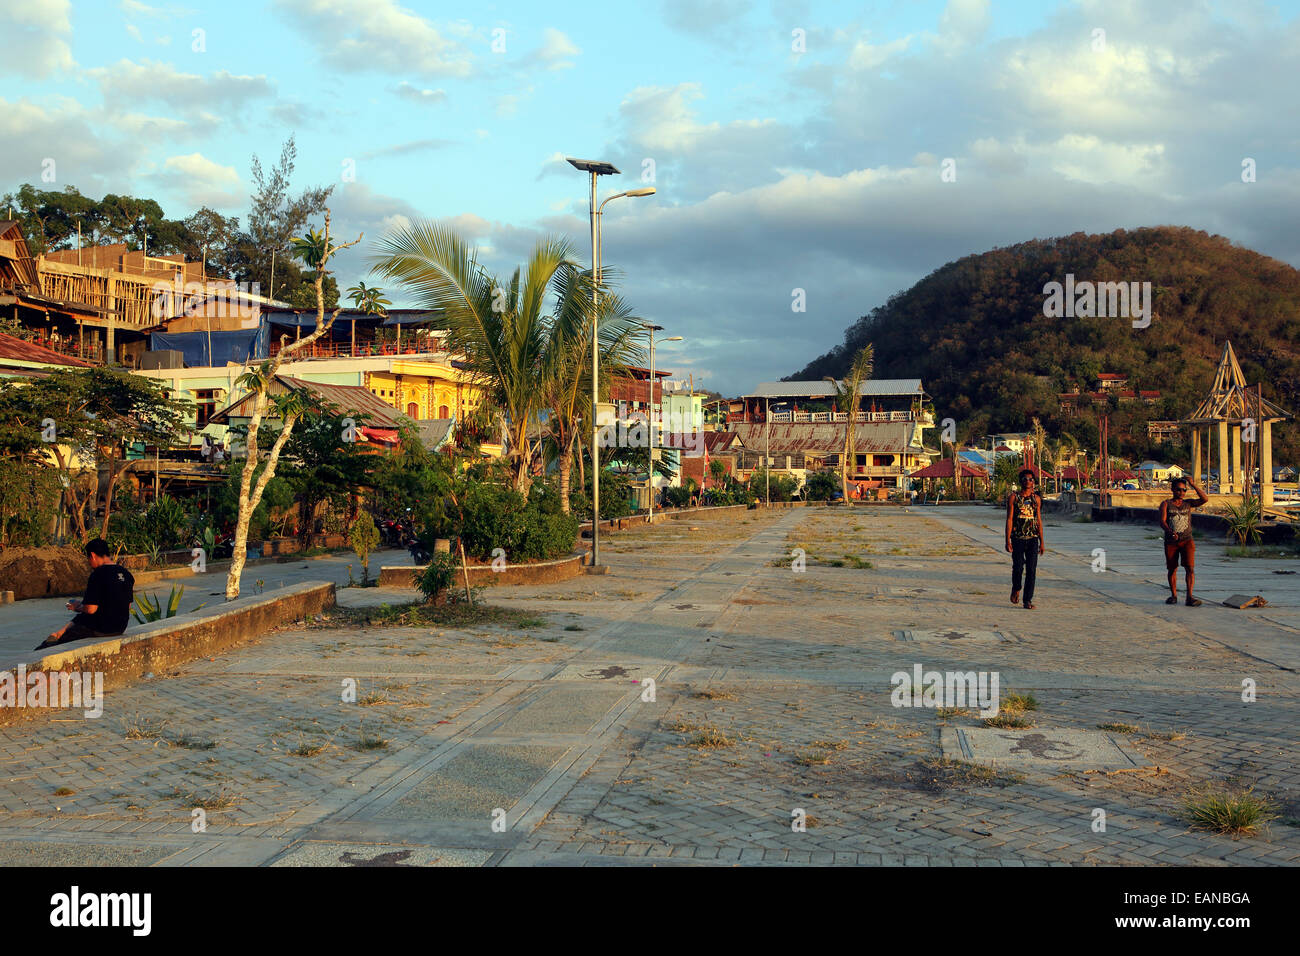 People on unkempt waterfront promenade in Labuan Balo, Flores - Stock Image